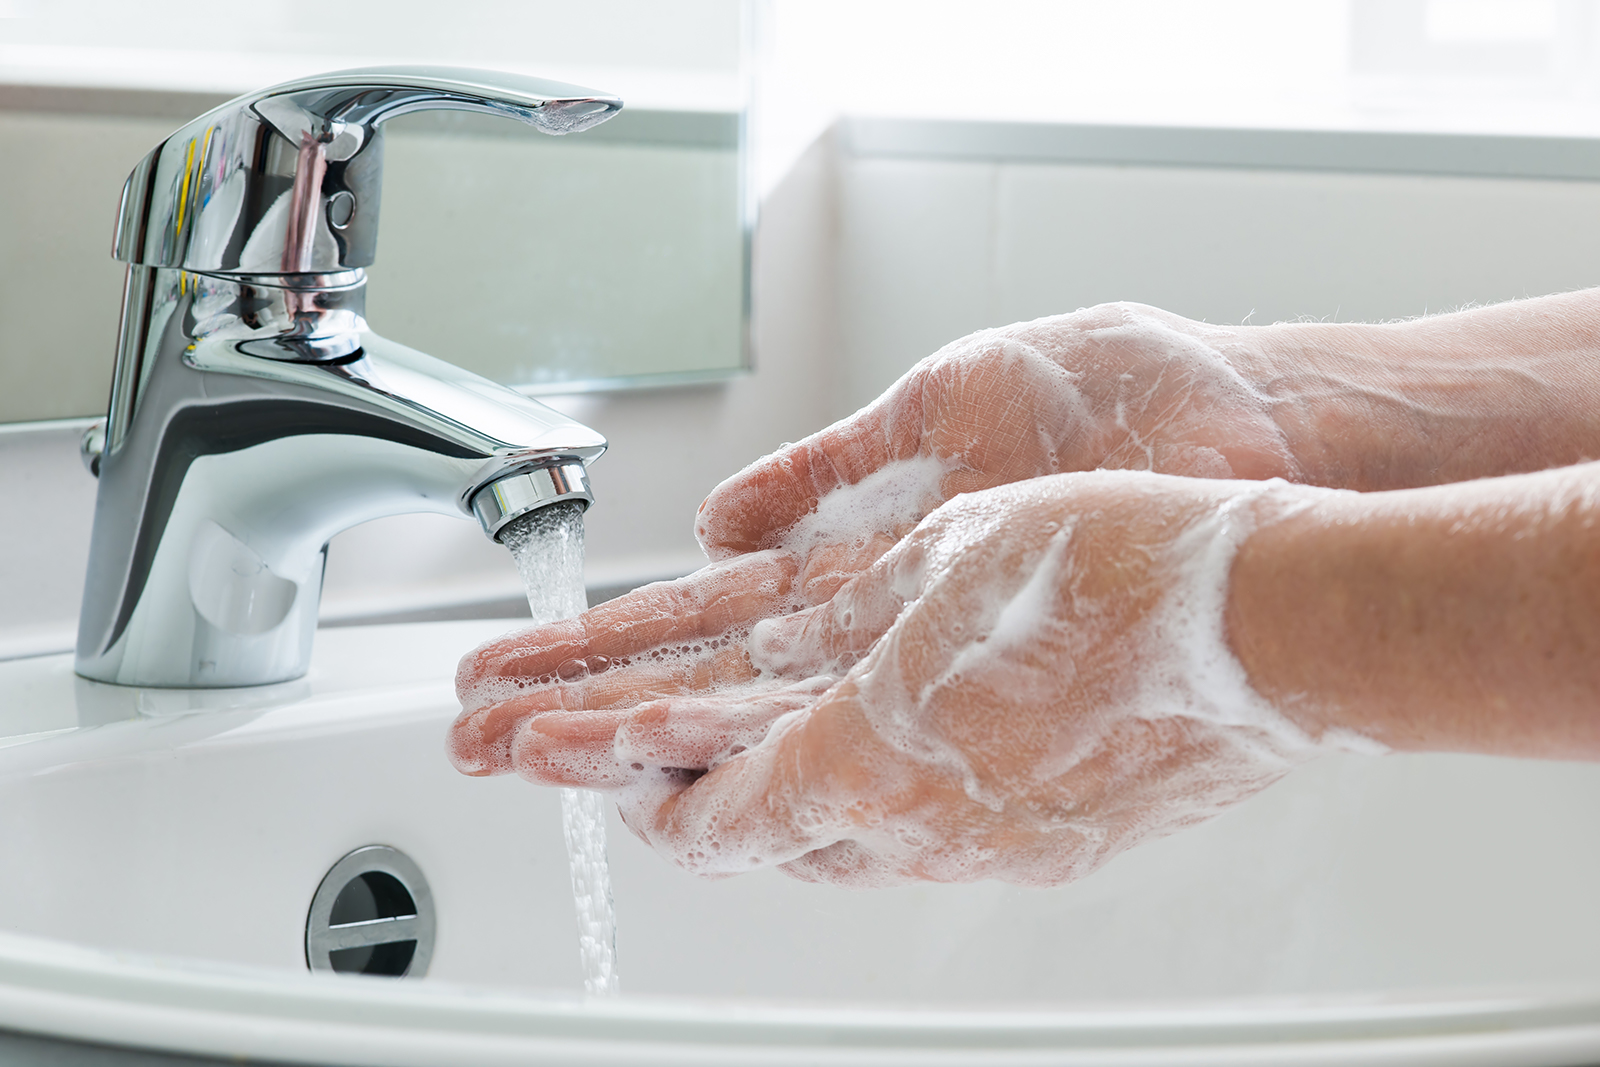 Soapy hands being washed under a sink with running water.